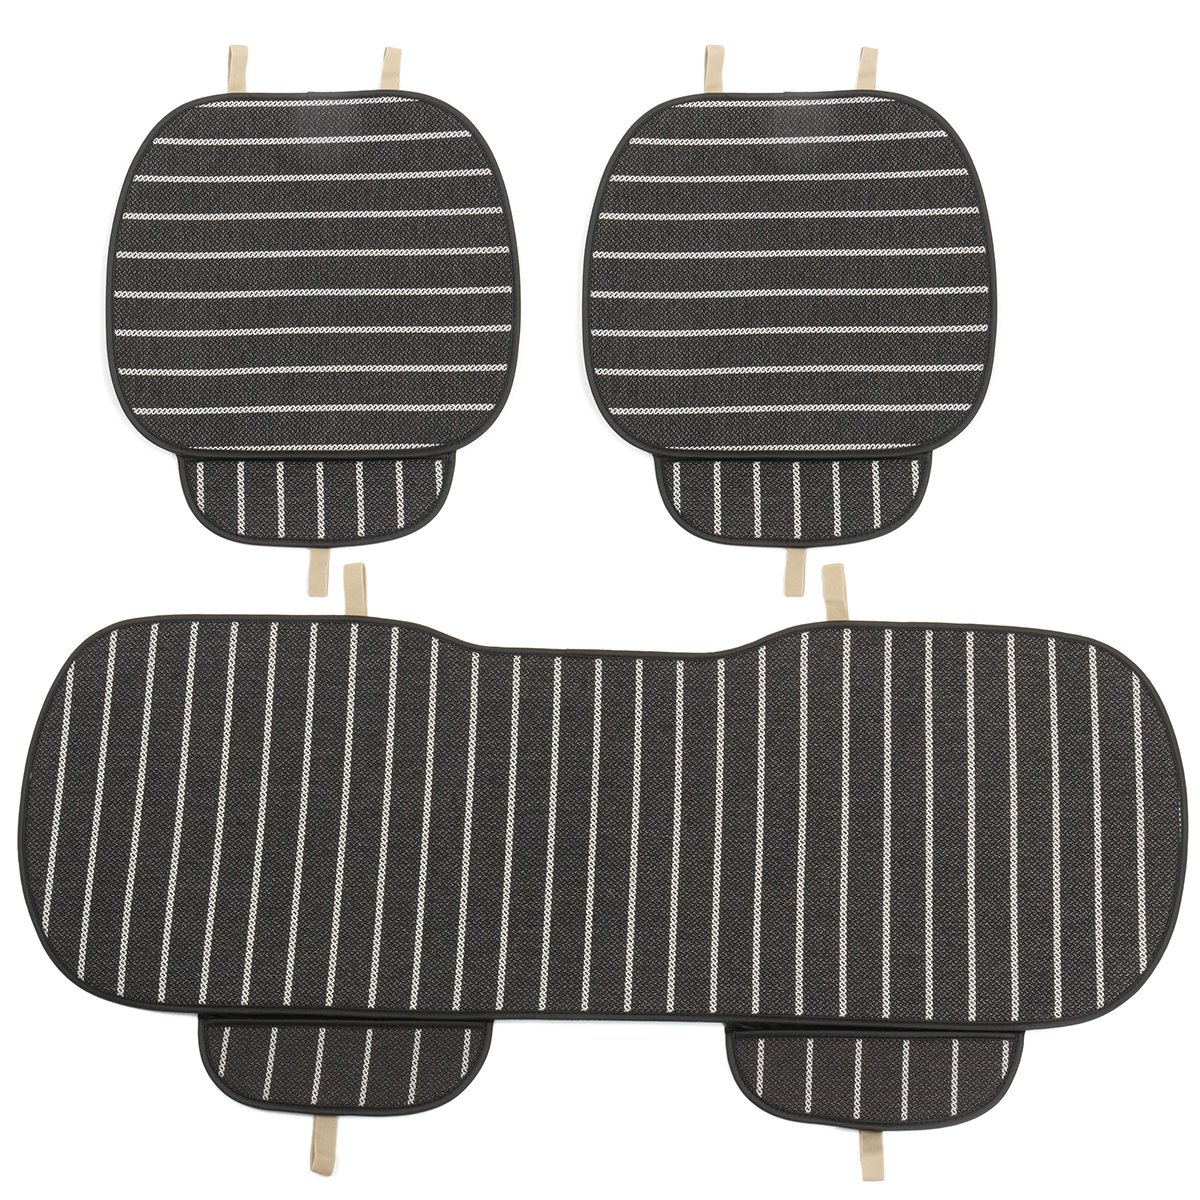 HITSAN 3Pcs Car Seat Cover 5-Seats Breathable Linen Fabric Pad Mat For Auto Chair Cushion One Piece